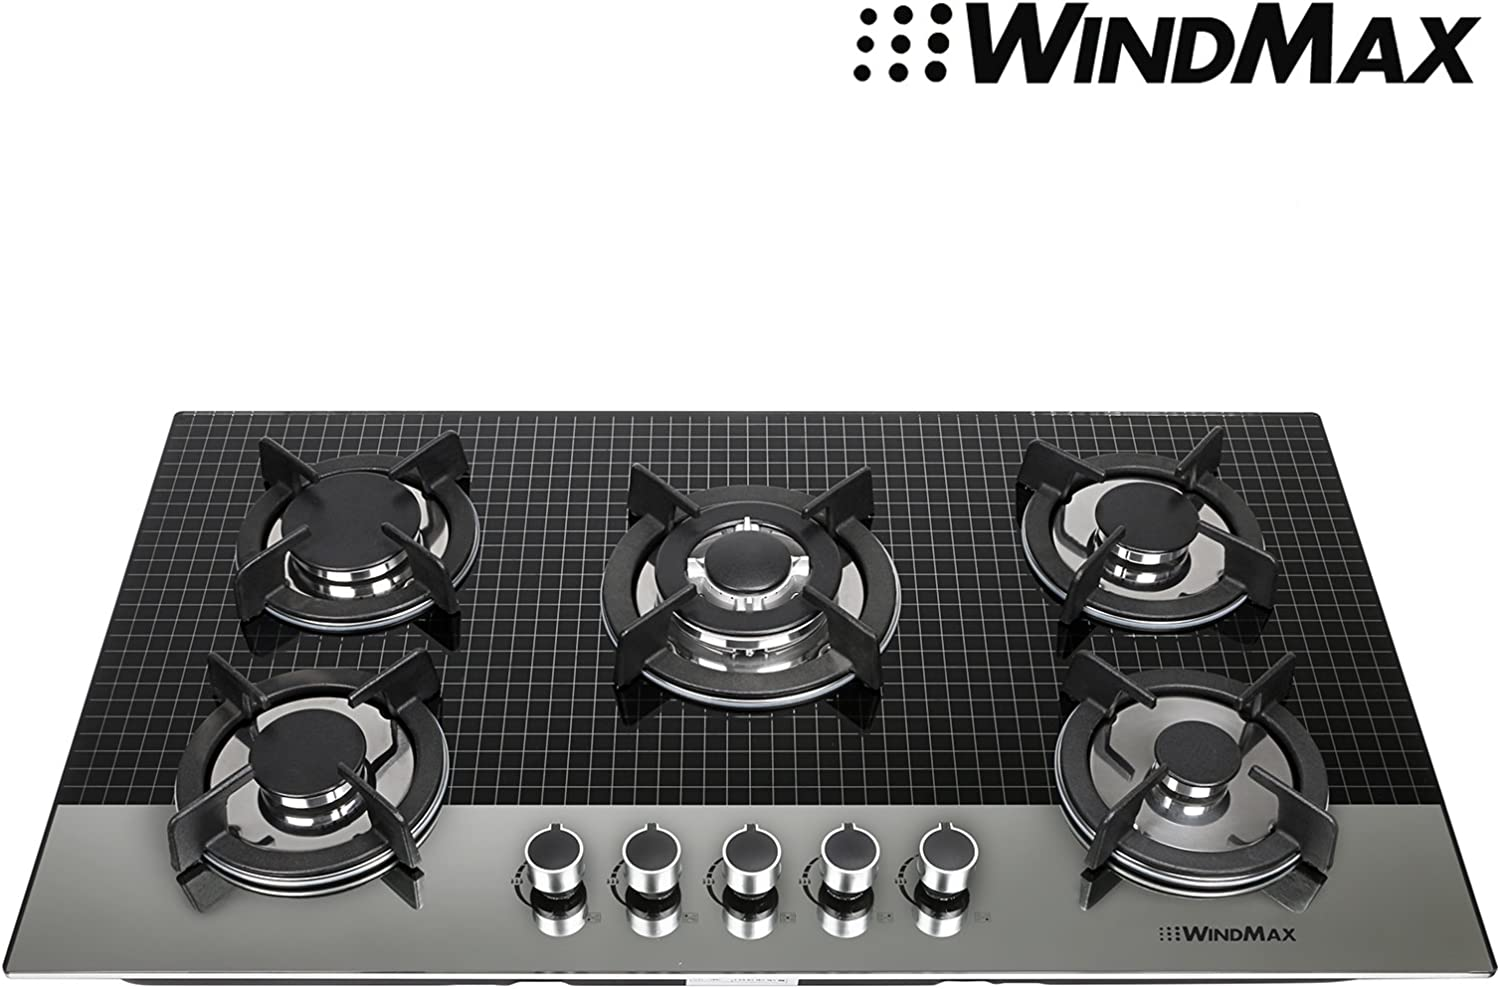 Ship from US~Windmax 35.5 Inch Coated Glass 5 Burners Built-In Stove NG Gas Cooktop Cooker